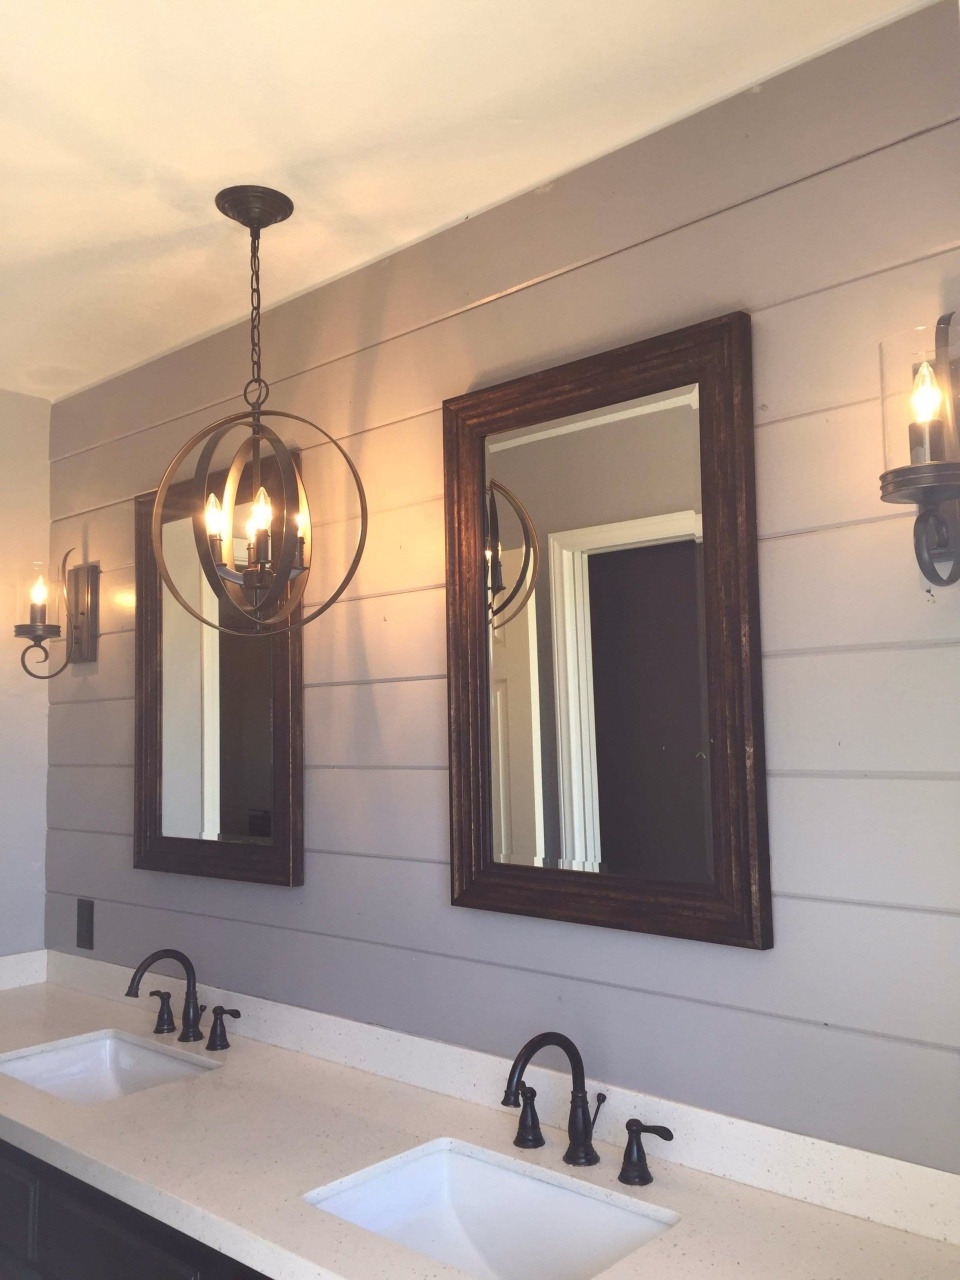 his and hers bathroom decor 36 new diy ideas for bathroom decor from his and hers bathroom decor 1